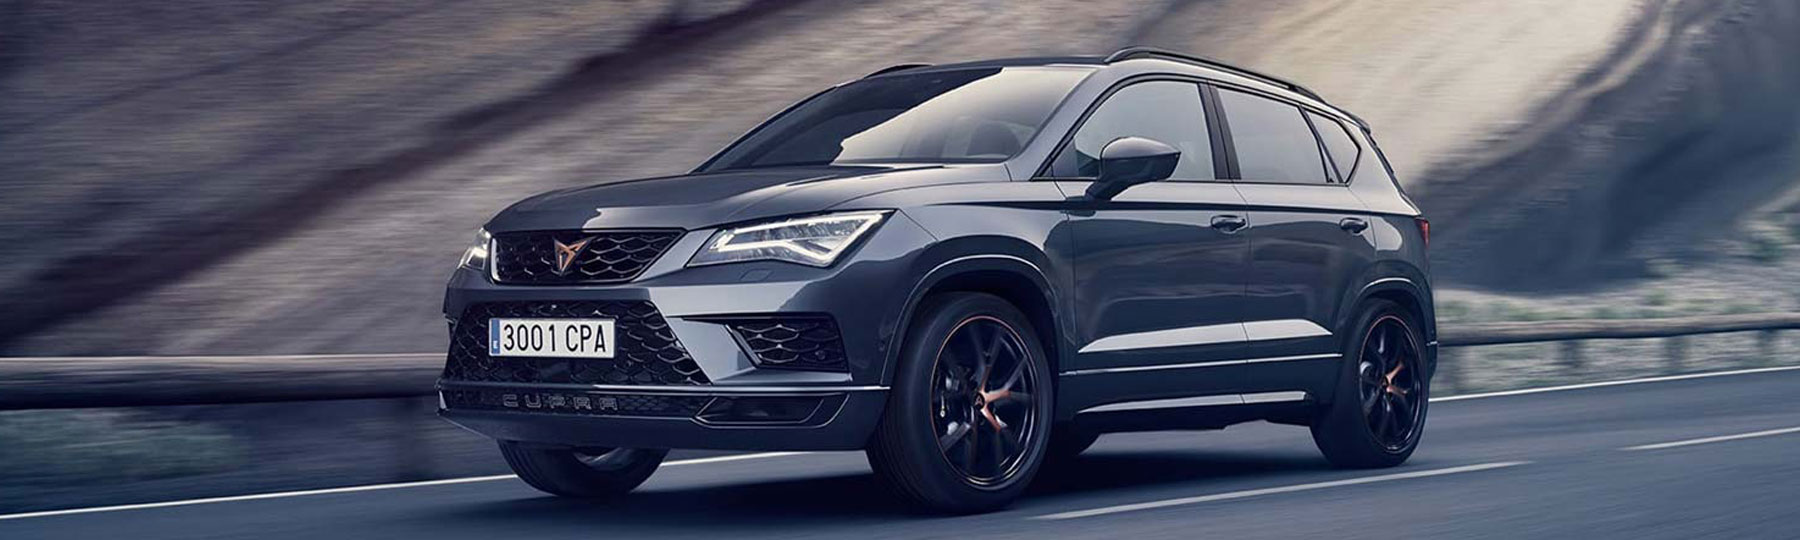 CUPRA Ateca Business Offer